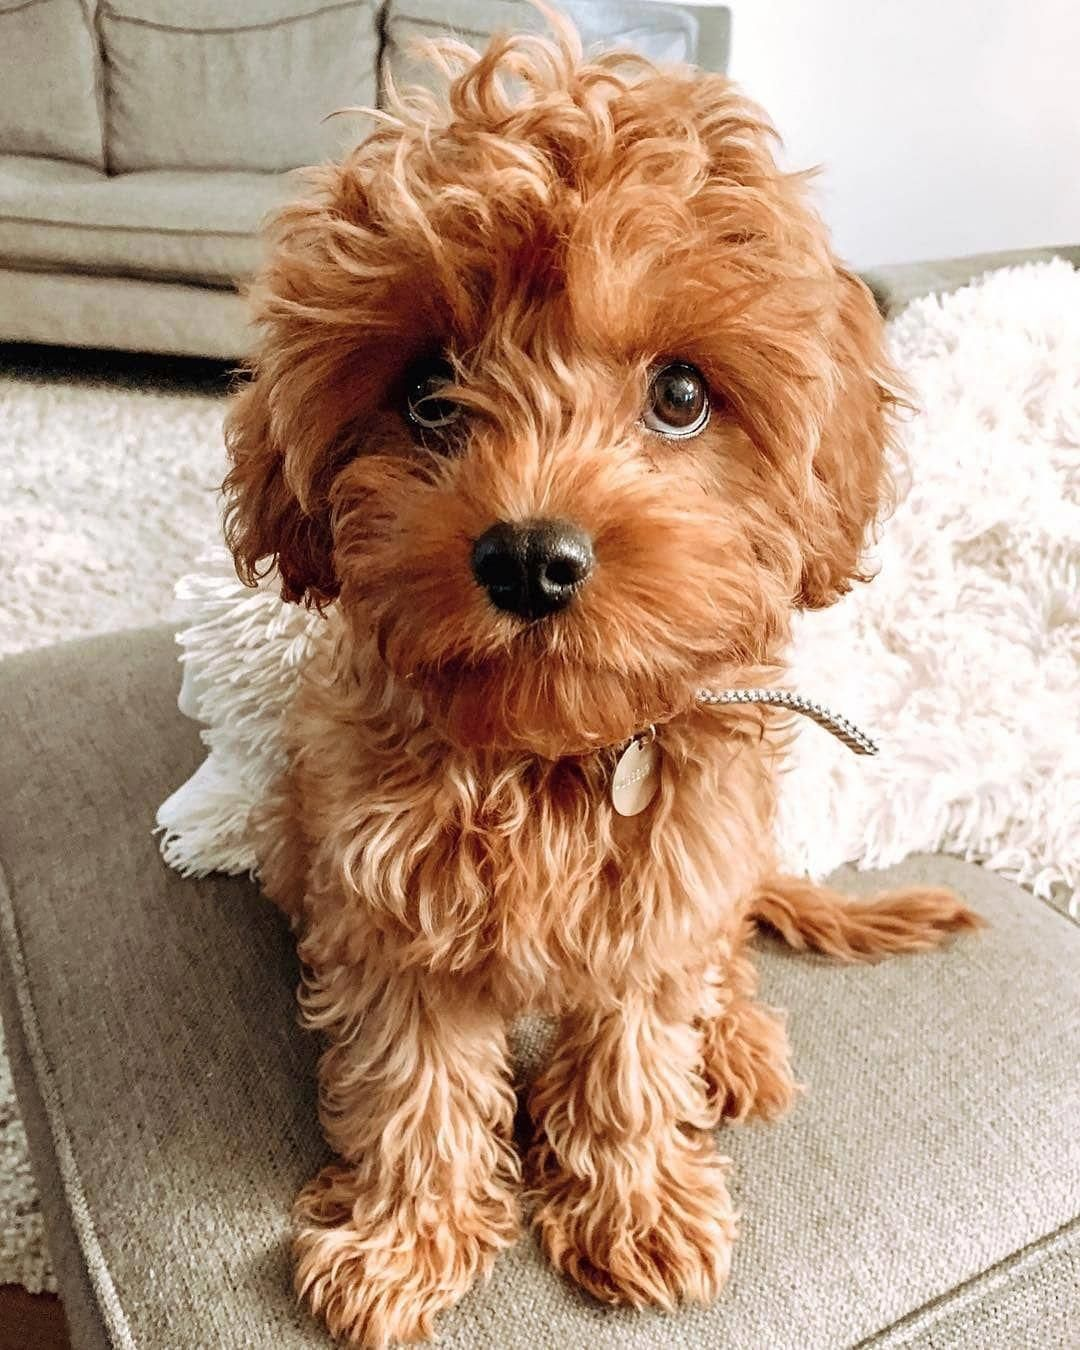 Small Dog Videos Stuff Smalldogthatdontshed Smalldogvideosbrown Smalldogforkids Learn What Food Is Good For Your Beloved Cavapoo Puppies Pretty Dogs Cavapoo